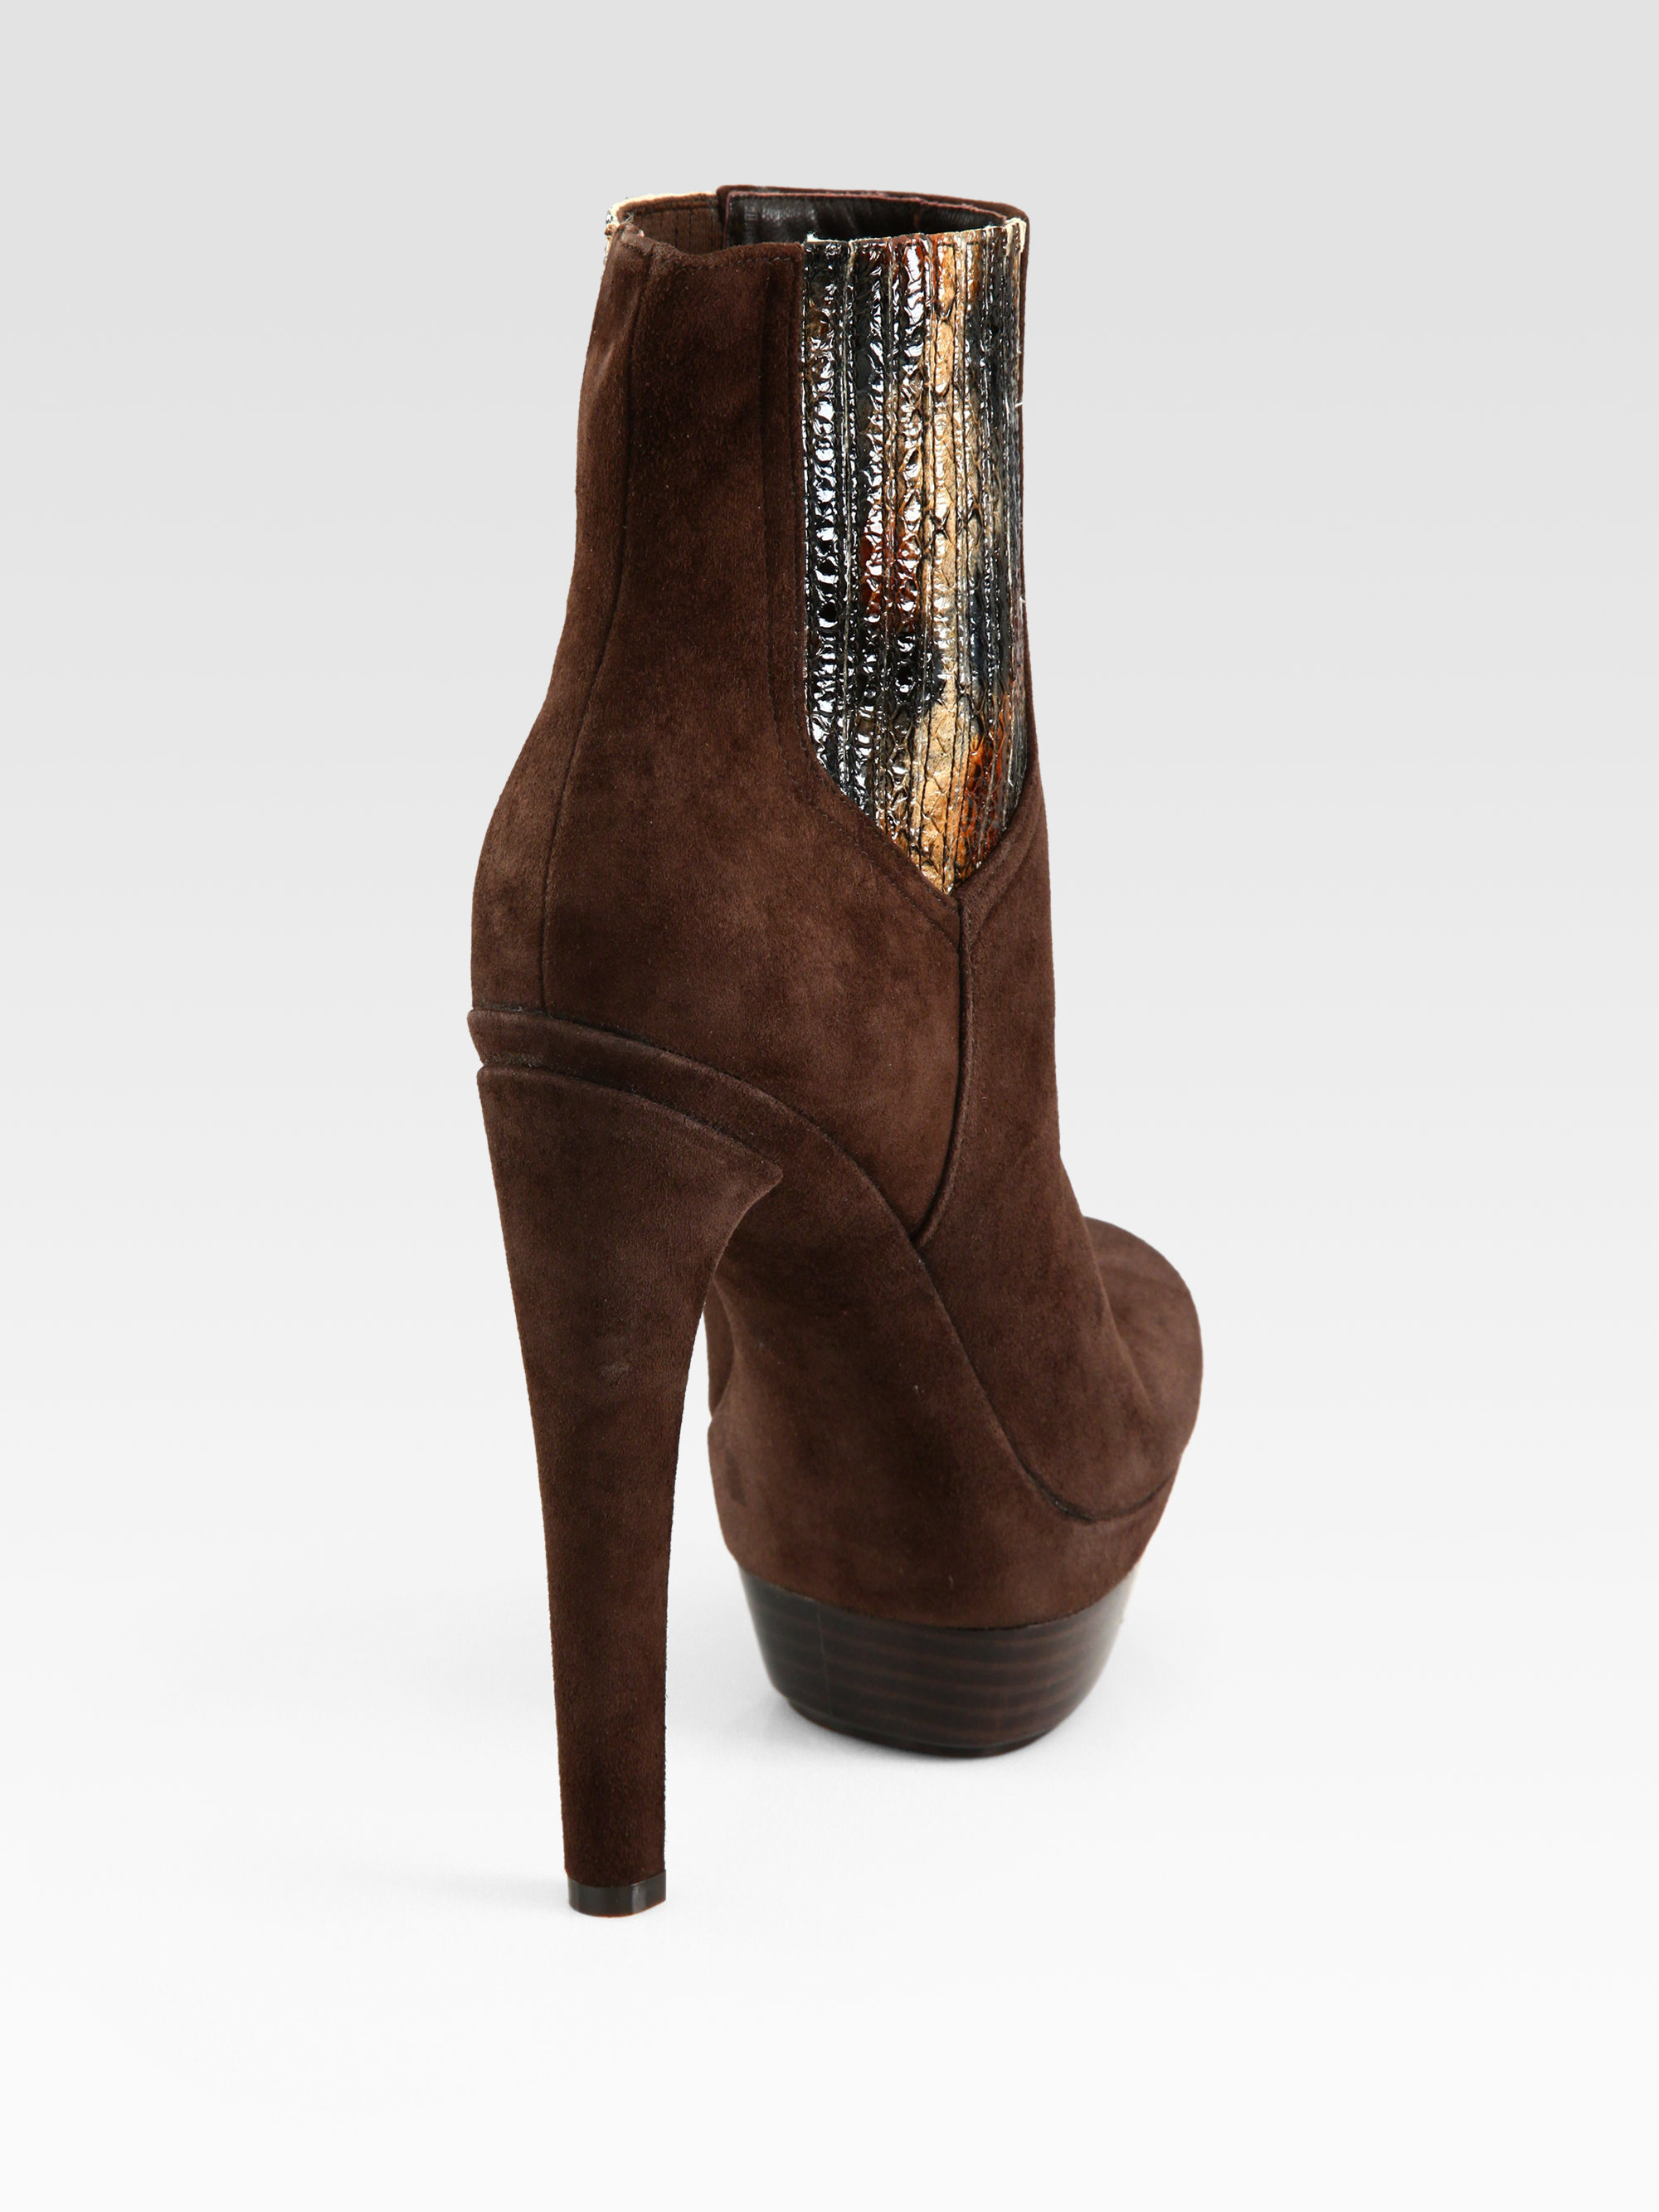 9bd362ea6feb0 Dark Brown Platform Ankle Boots - Best Picture Of Boot Imageco.Org